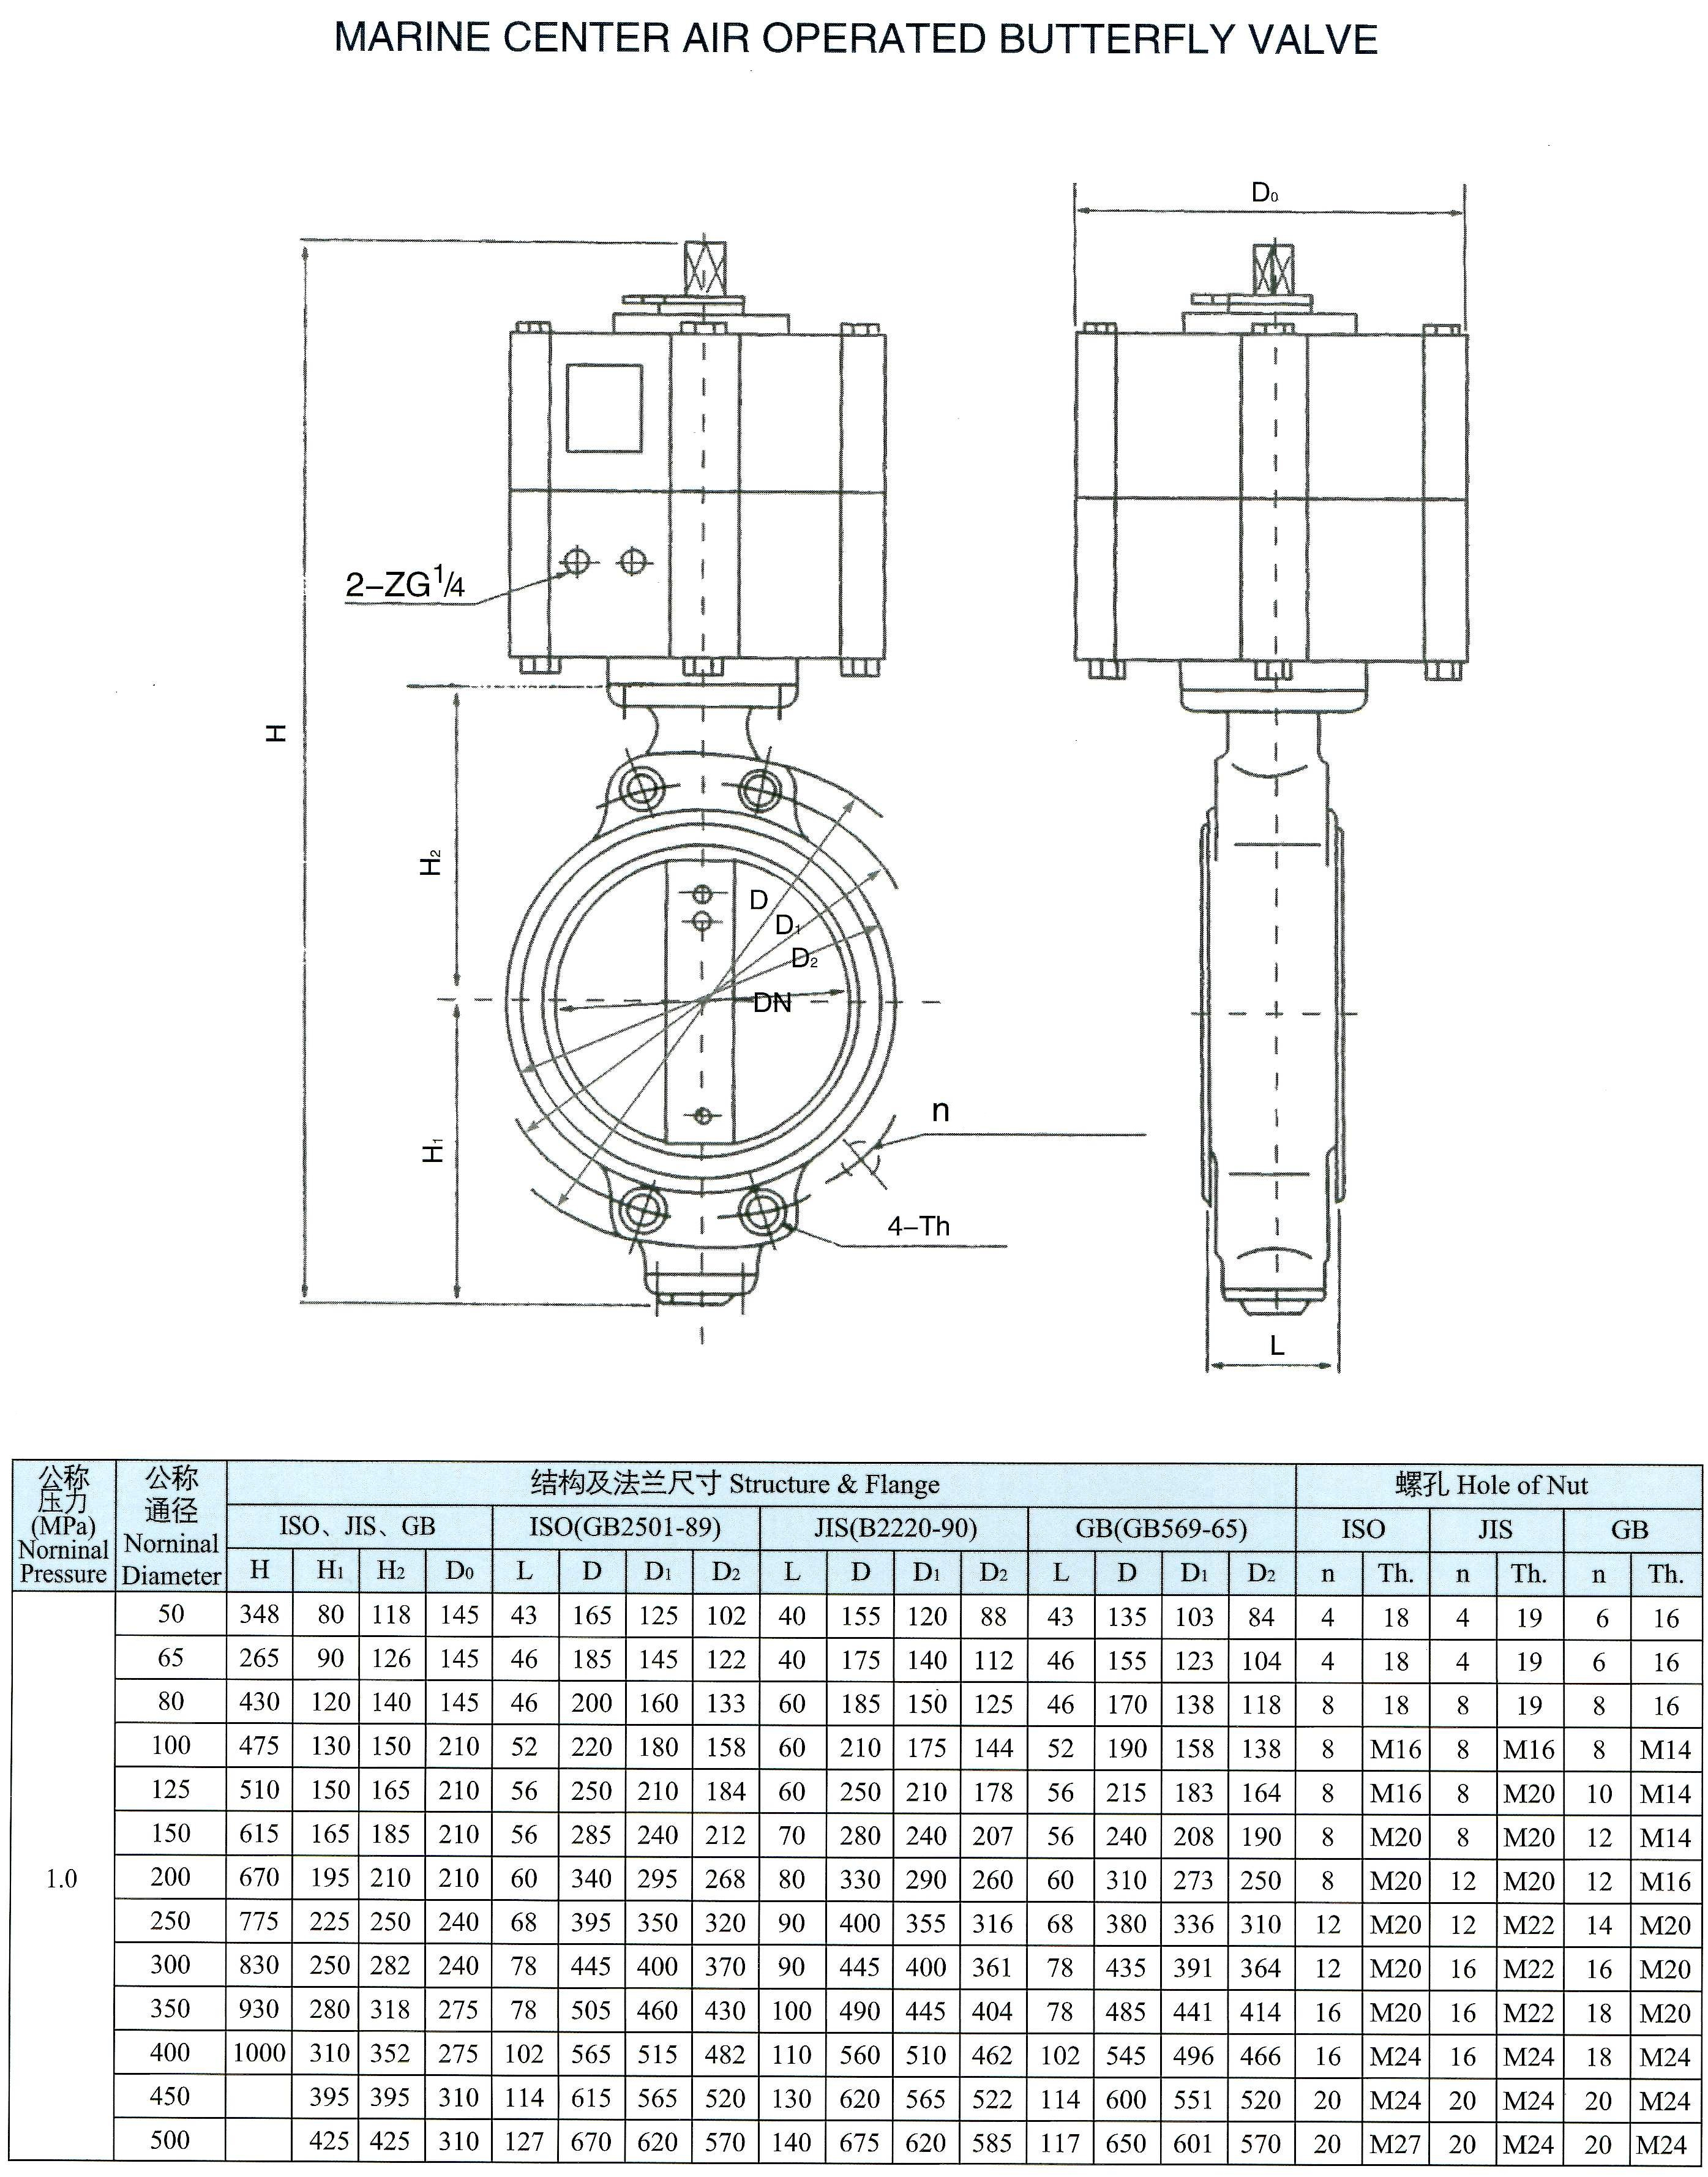 marine center air operated butterfly valve (Type Q)